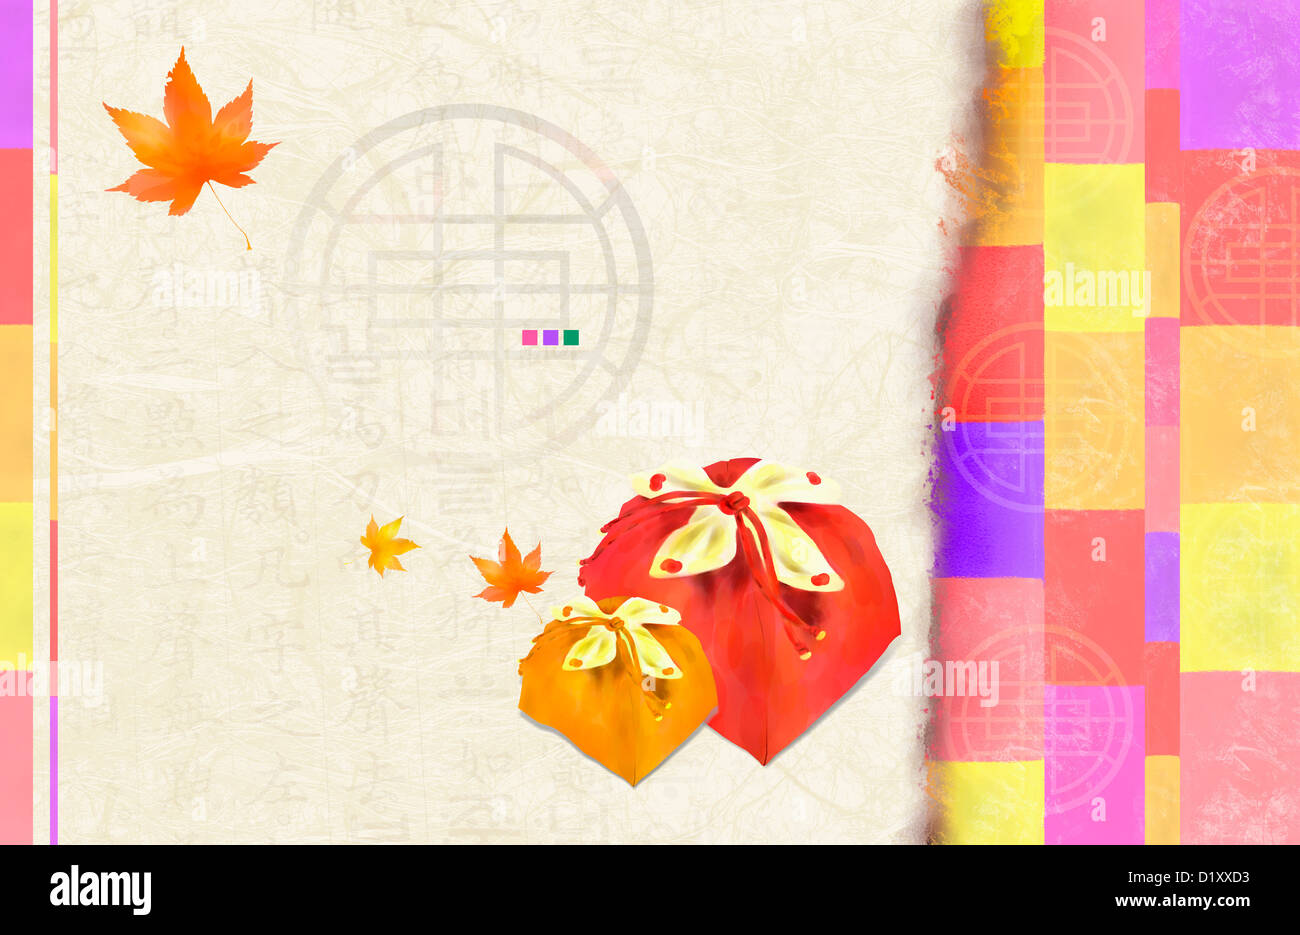 Ppt template illustration of korean traditional design stock photo ppt template illustration of korean traditional design toneelgroepblik Gallery